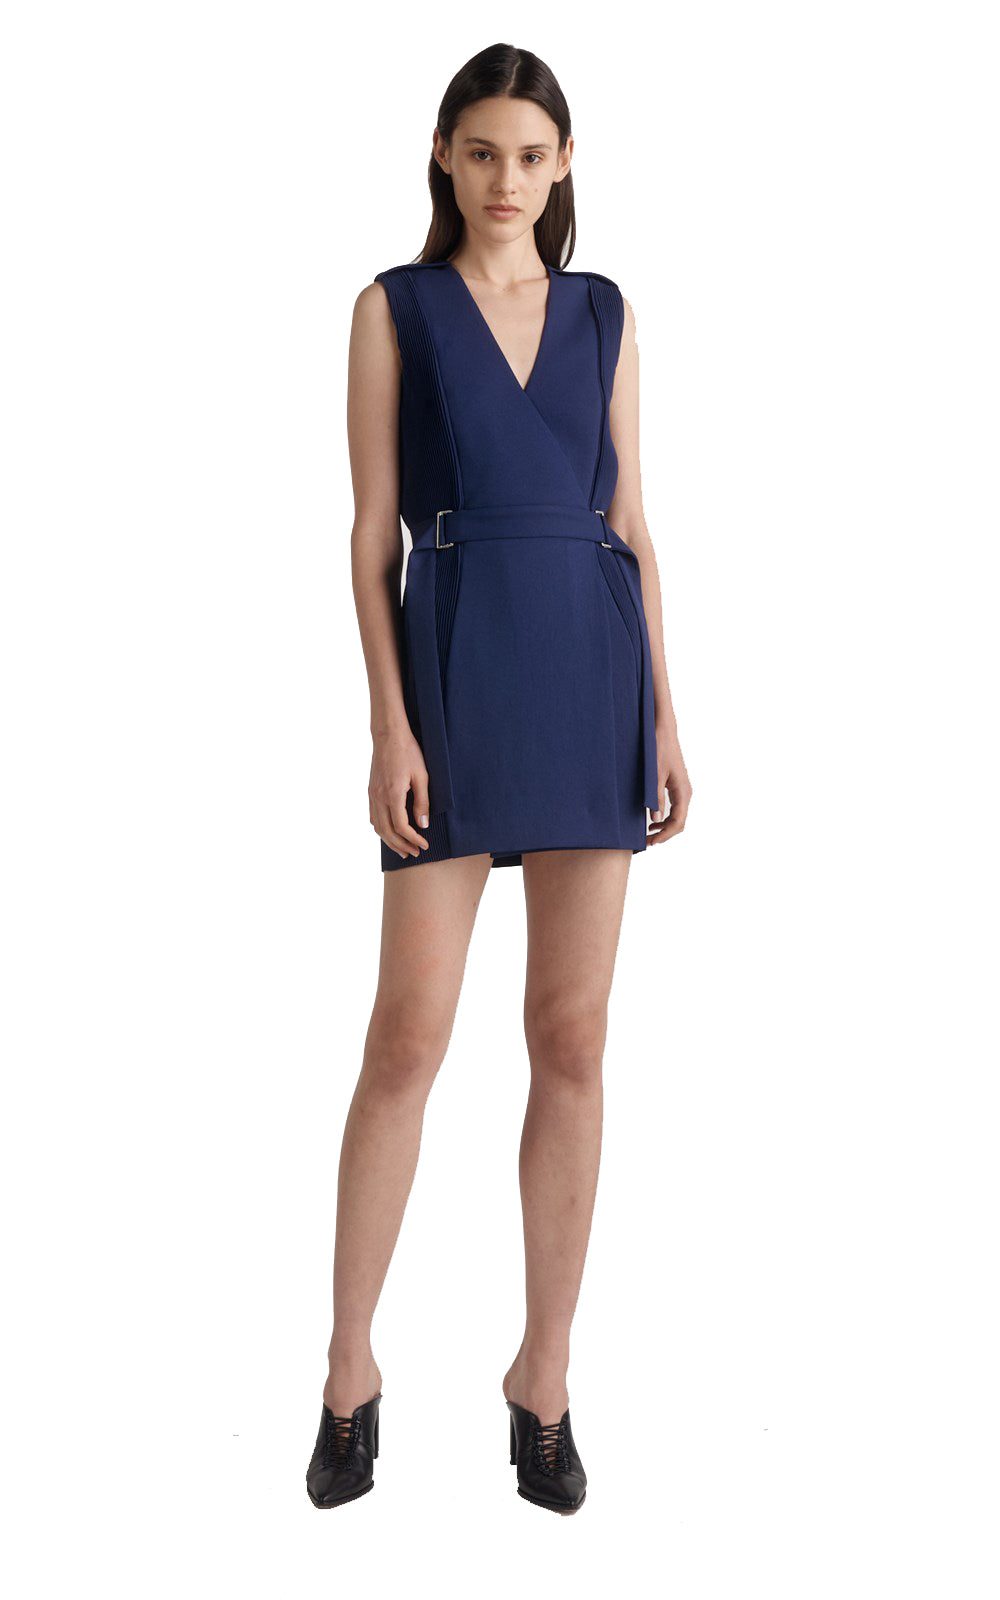 CORRUGATED PLEAT MINI DRESS NAVY